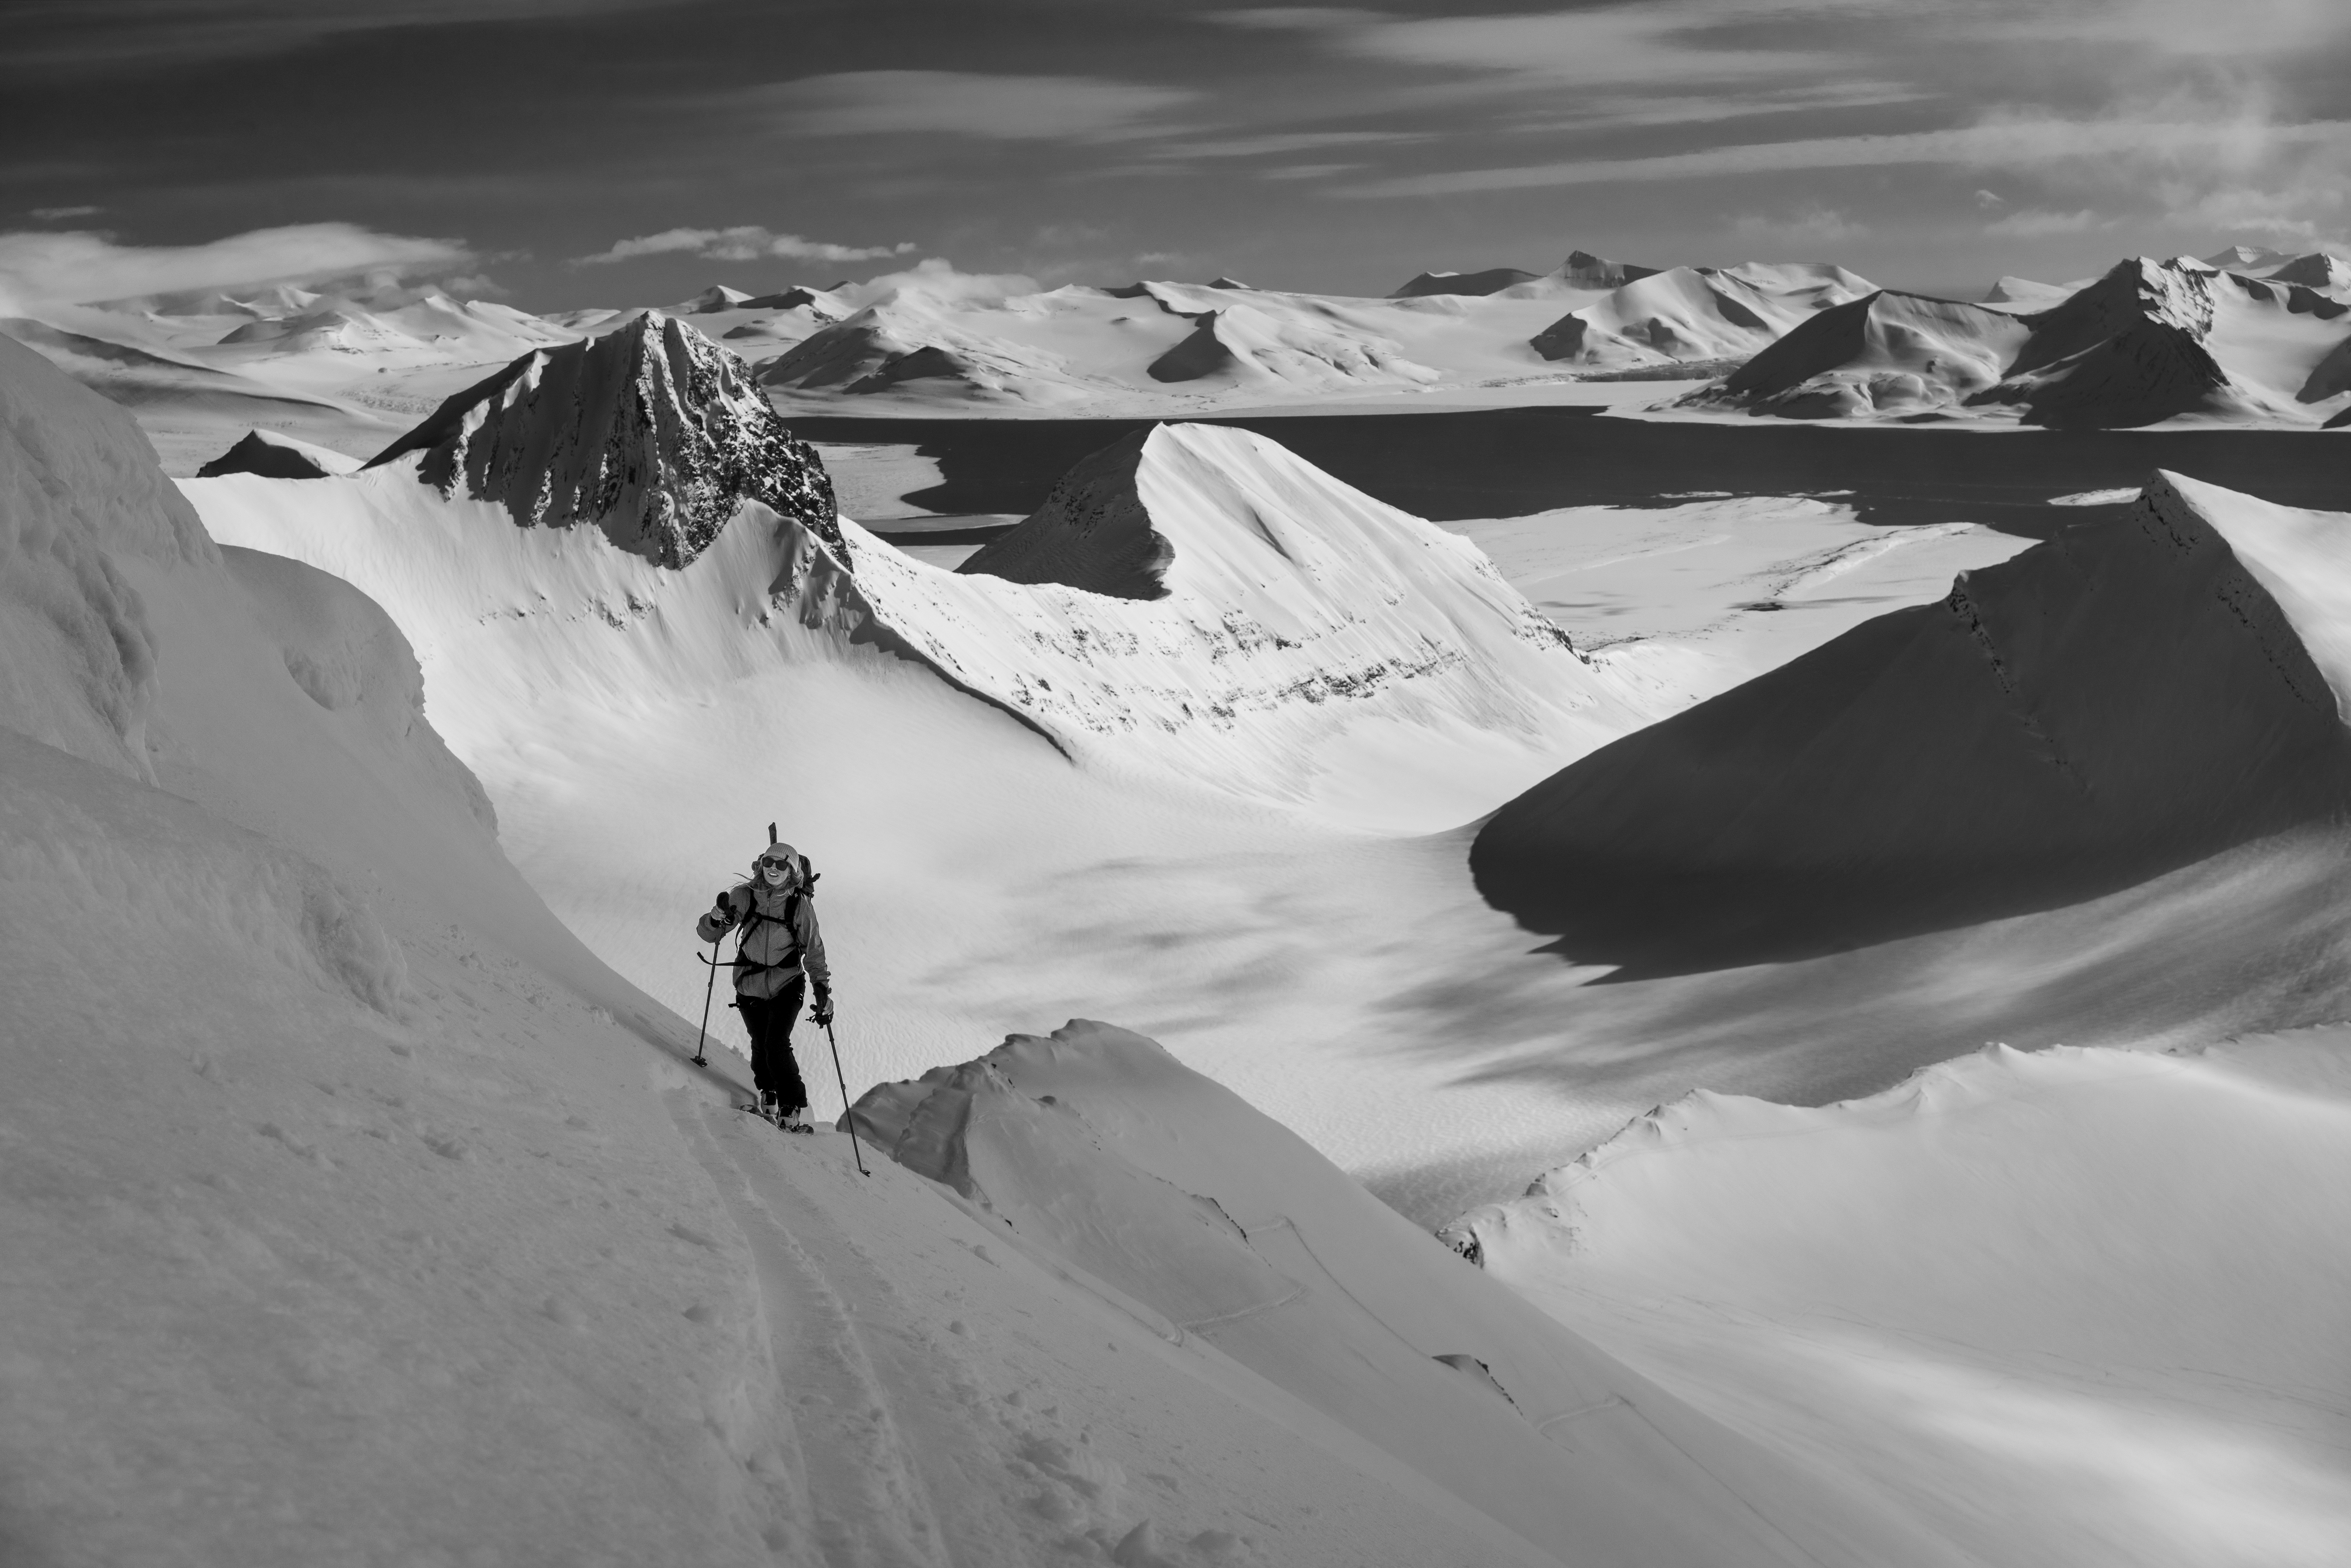 Skiing in the Mountains of Svalbard